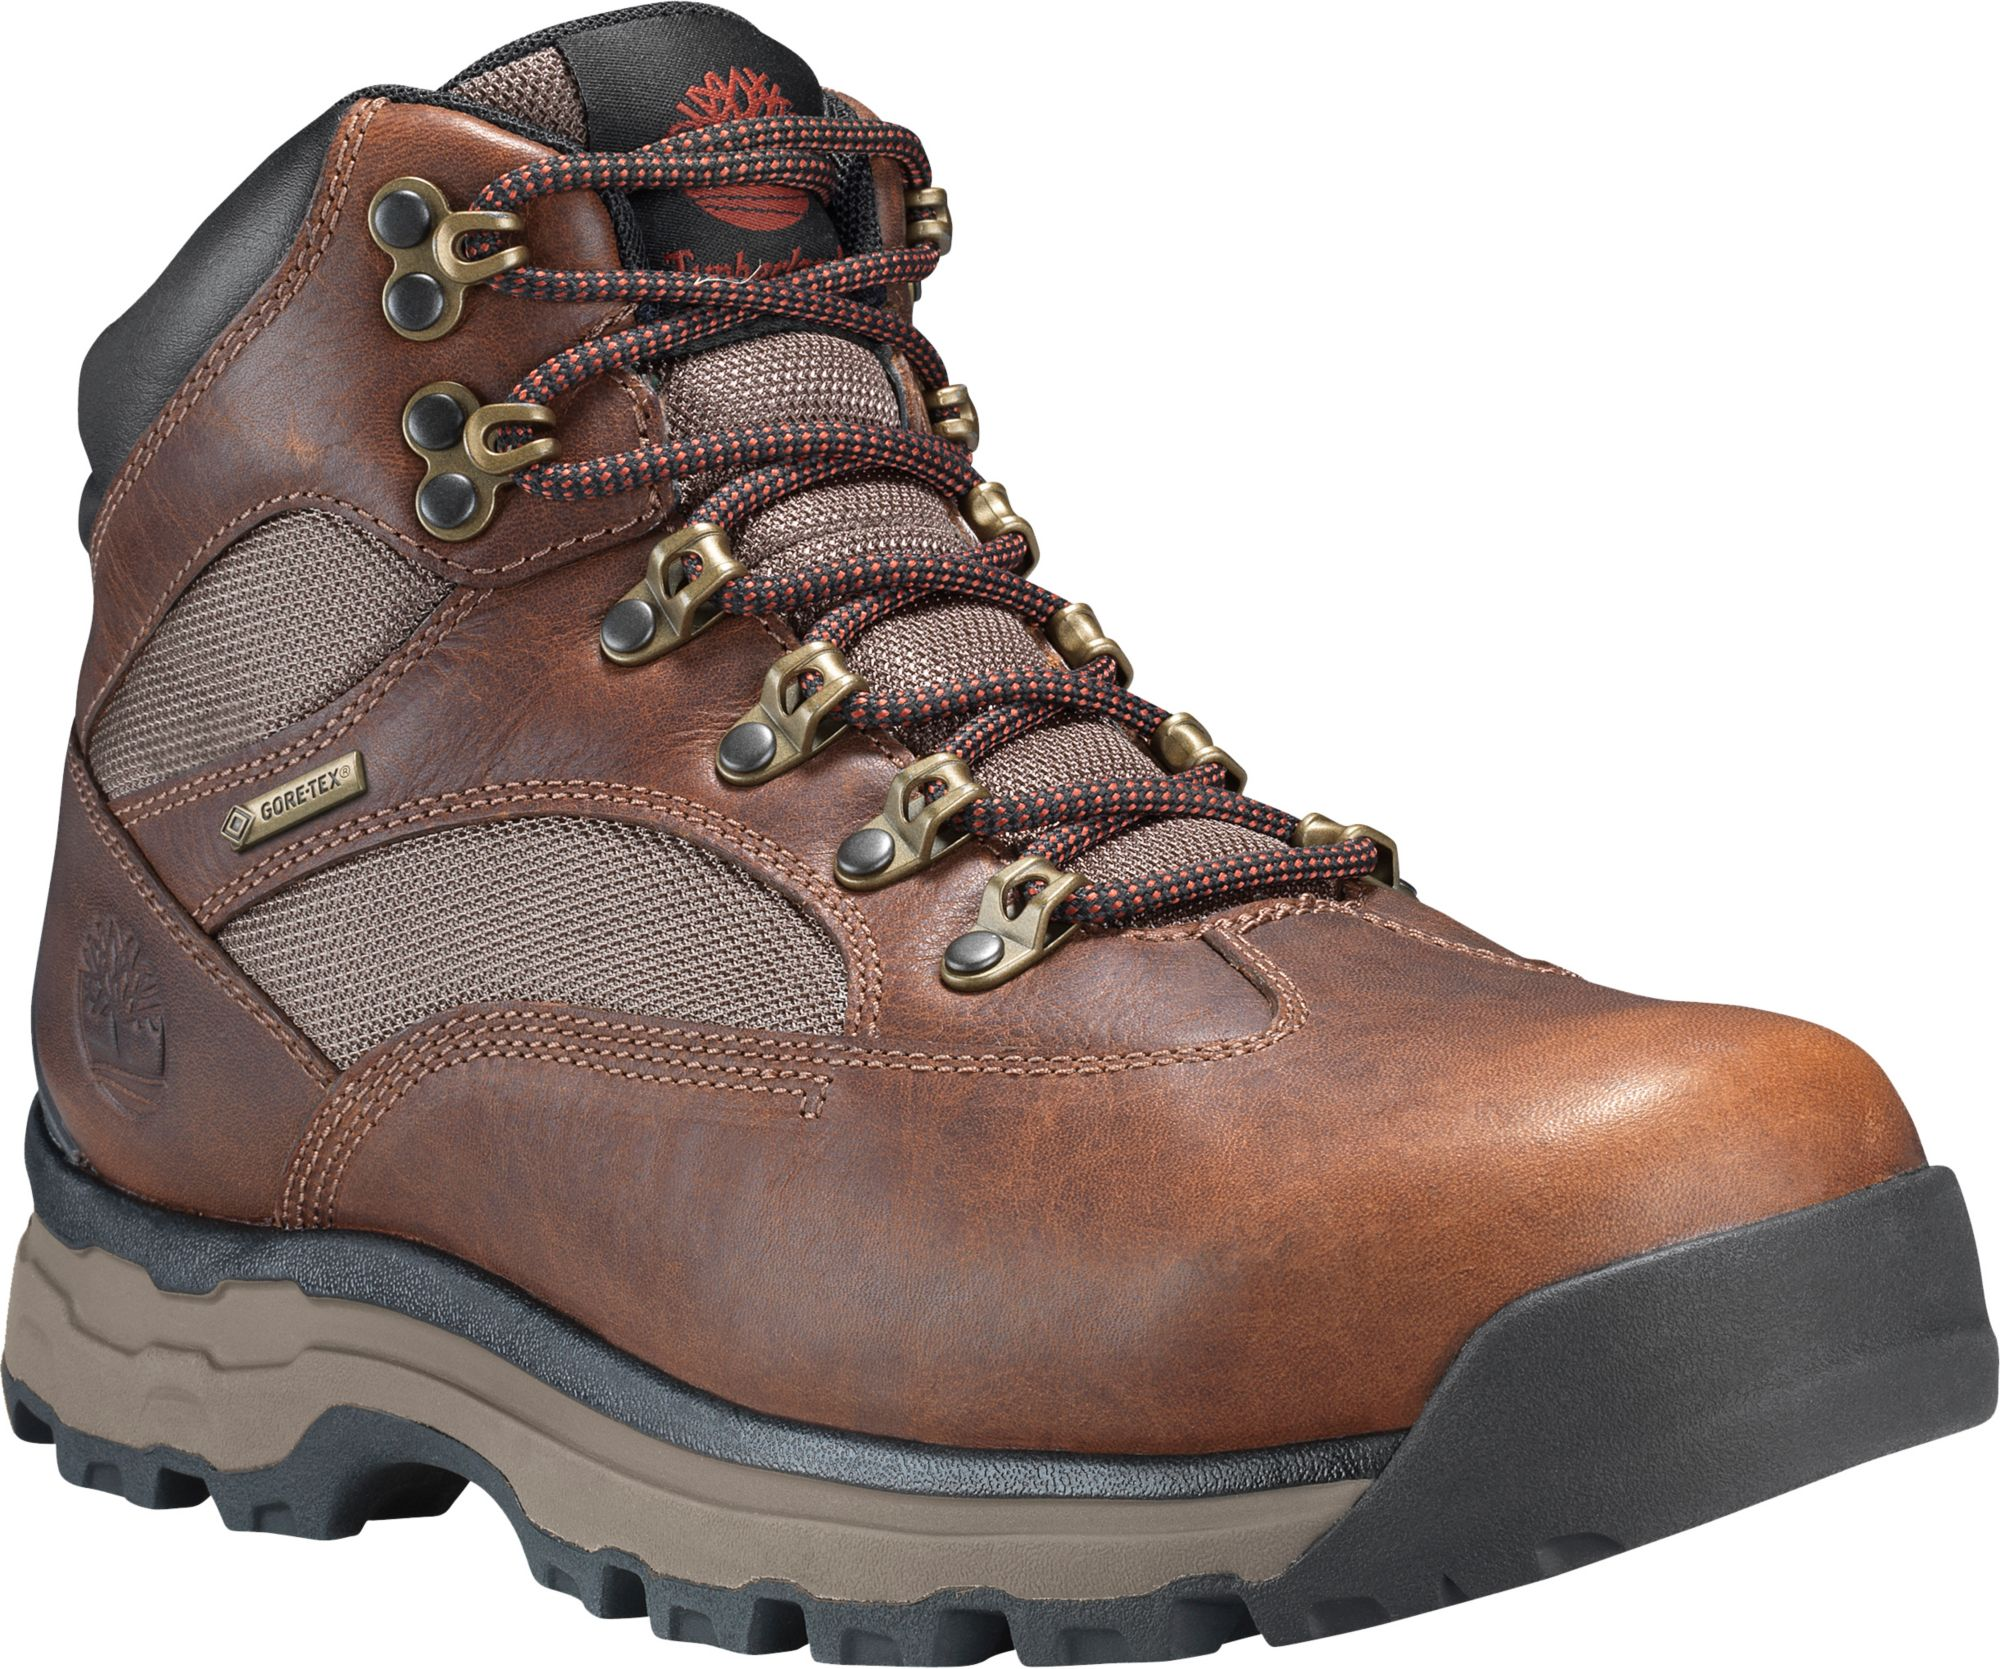 91f15cdc0d Timberland Men's Chocorua Trail 2.0 Mid GORE-TEX Hiking Boots ...